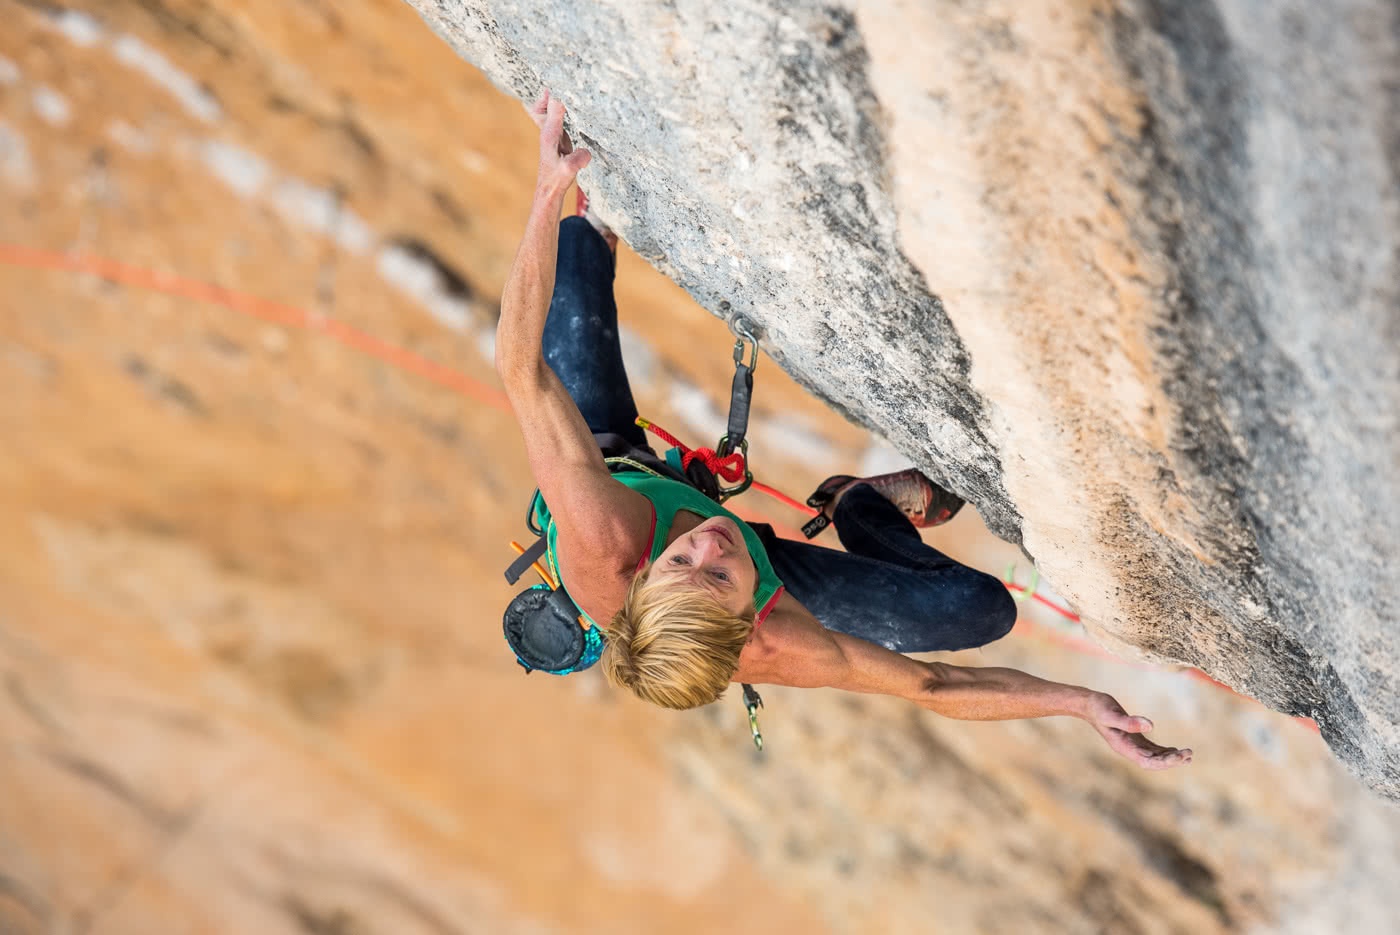 Monique Forestier, Photo by Simon Carter, Mind Control (8c+, 34), Oliana, Spain